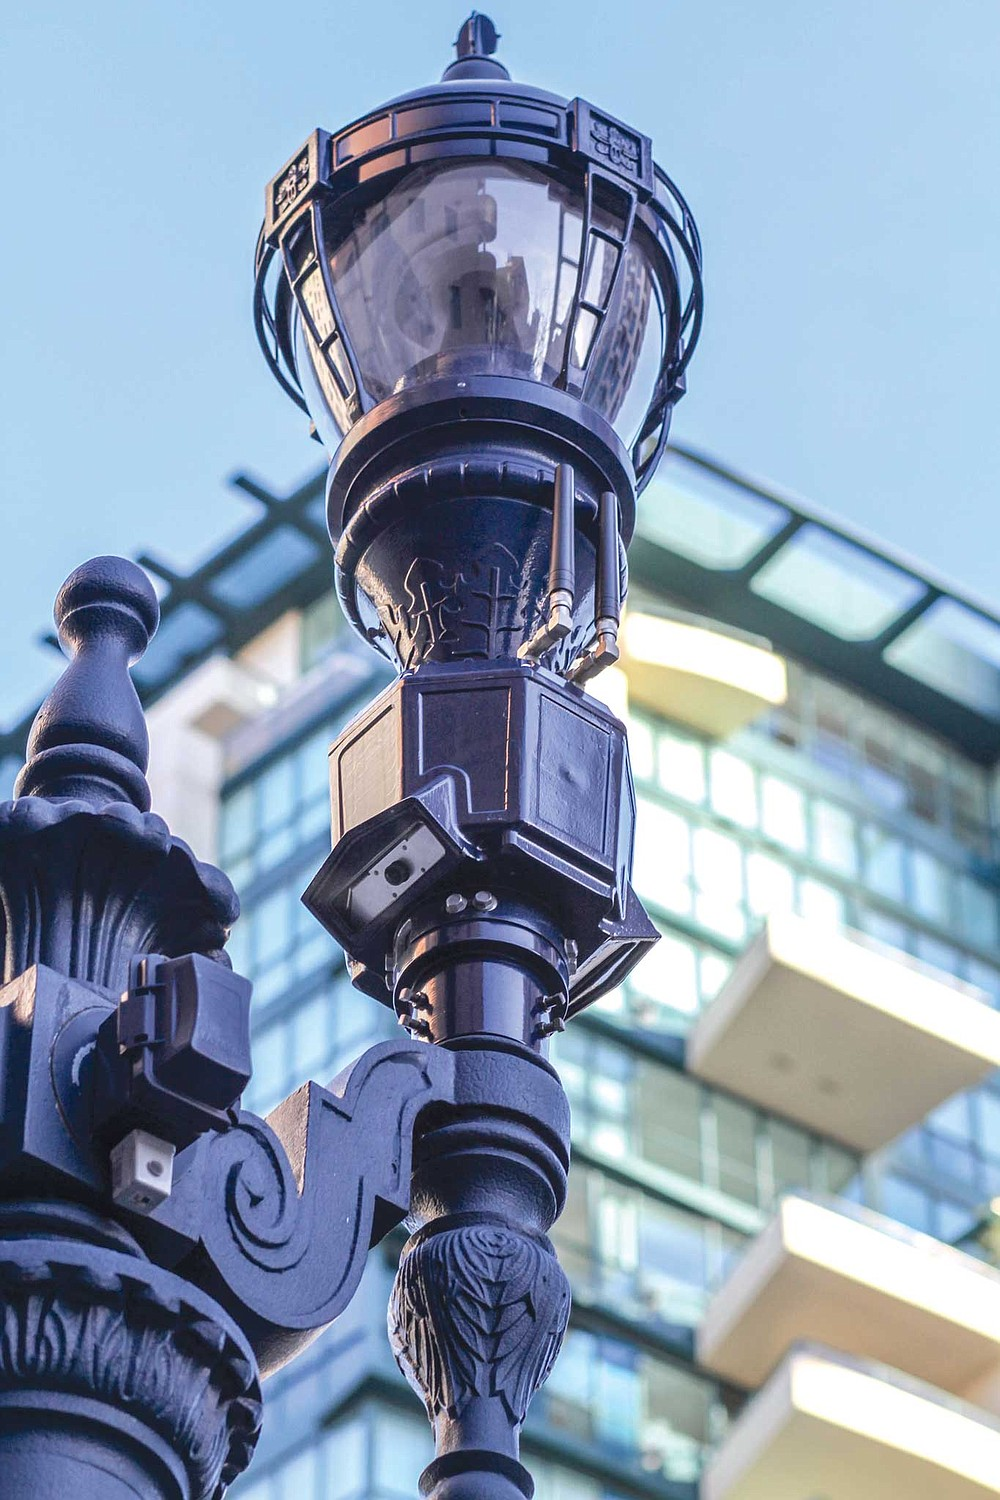 At least 3200 San Diego streetlights have been equipped with video and audio collection devices at public expense.